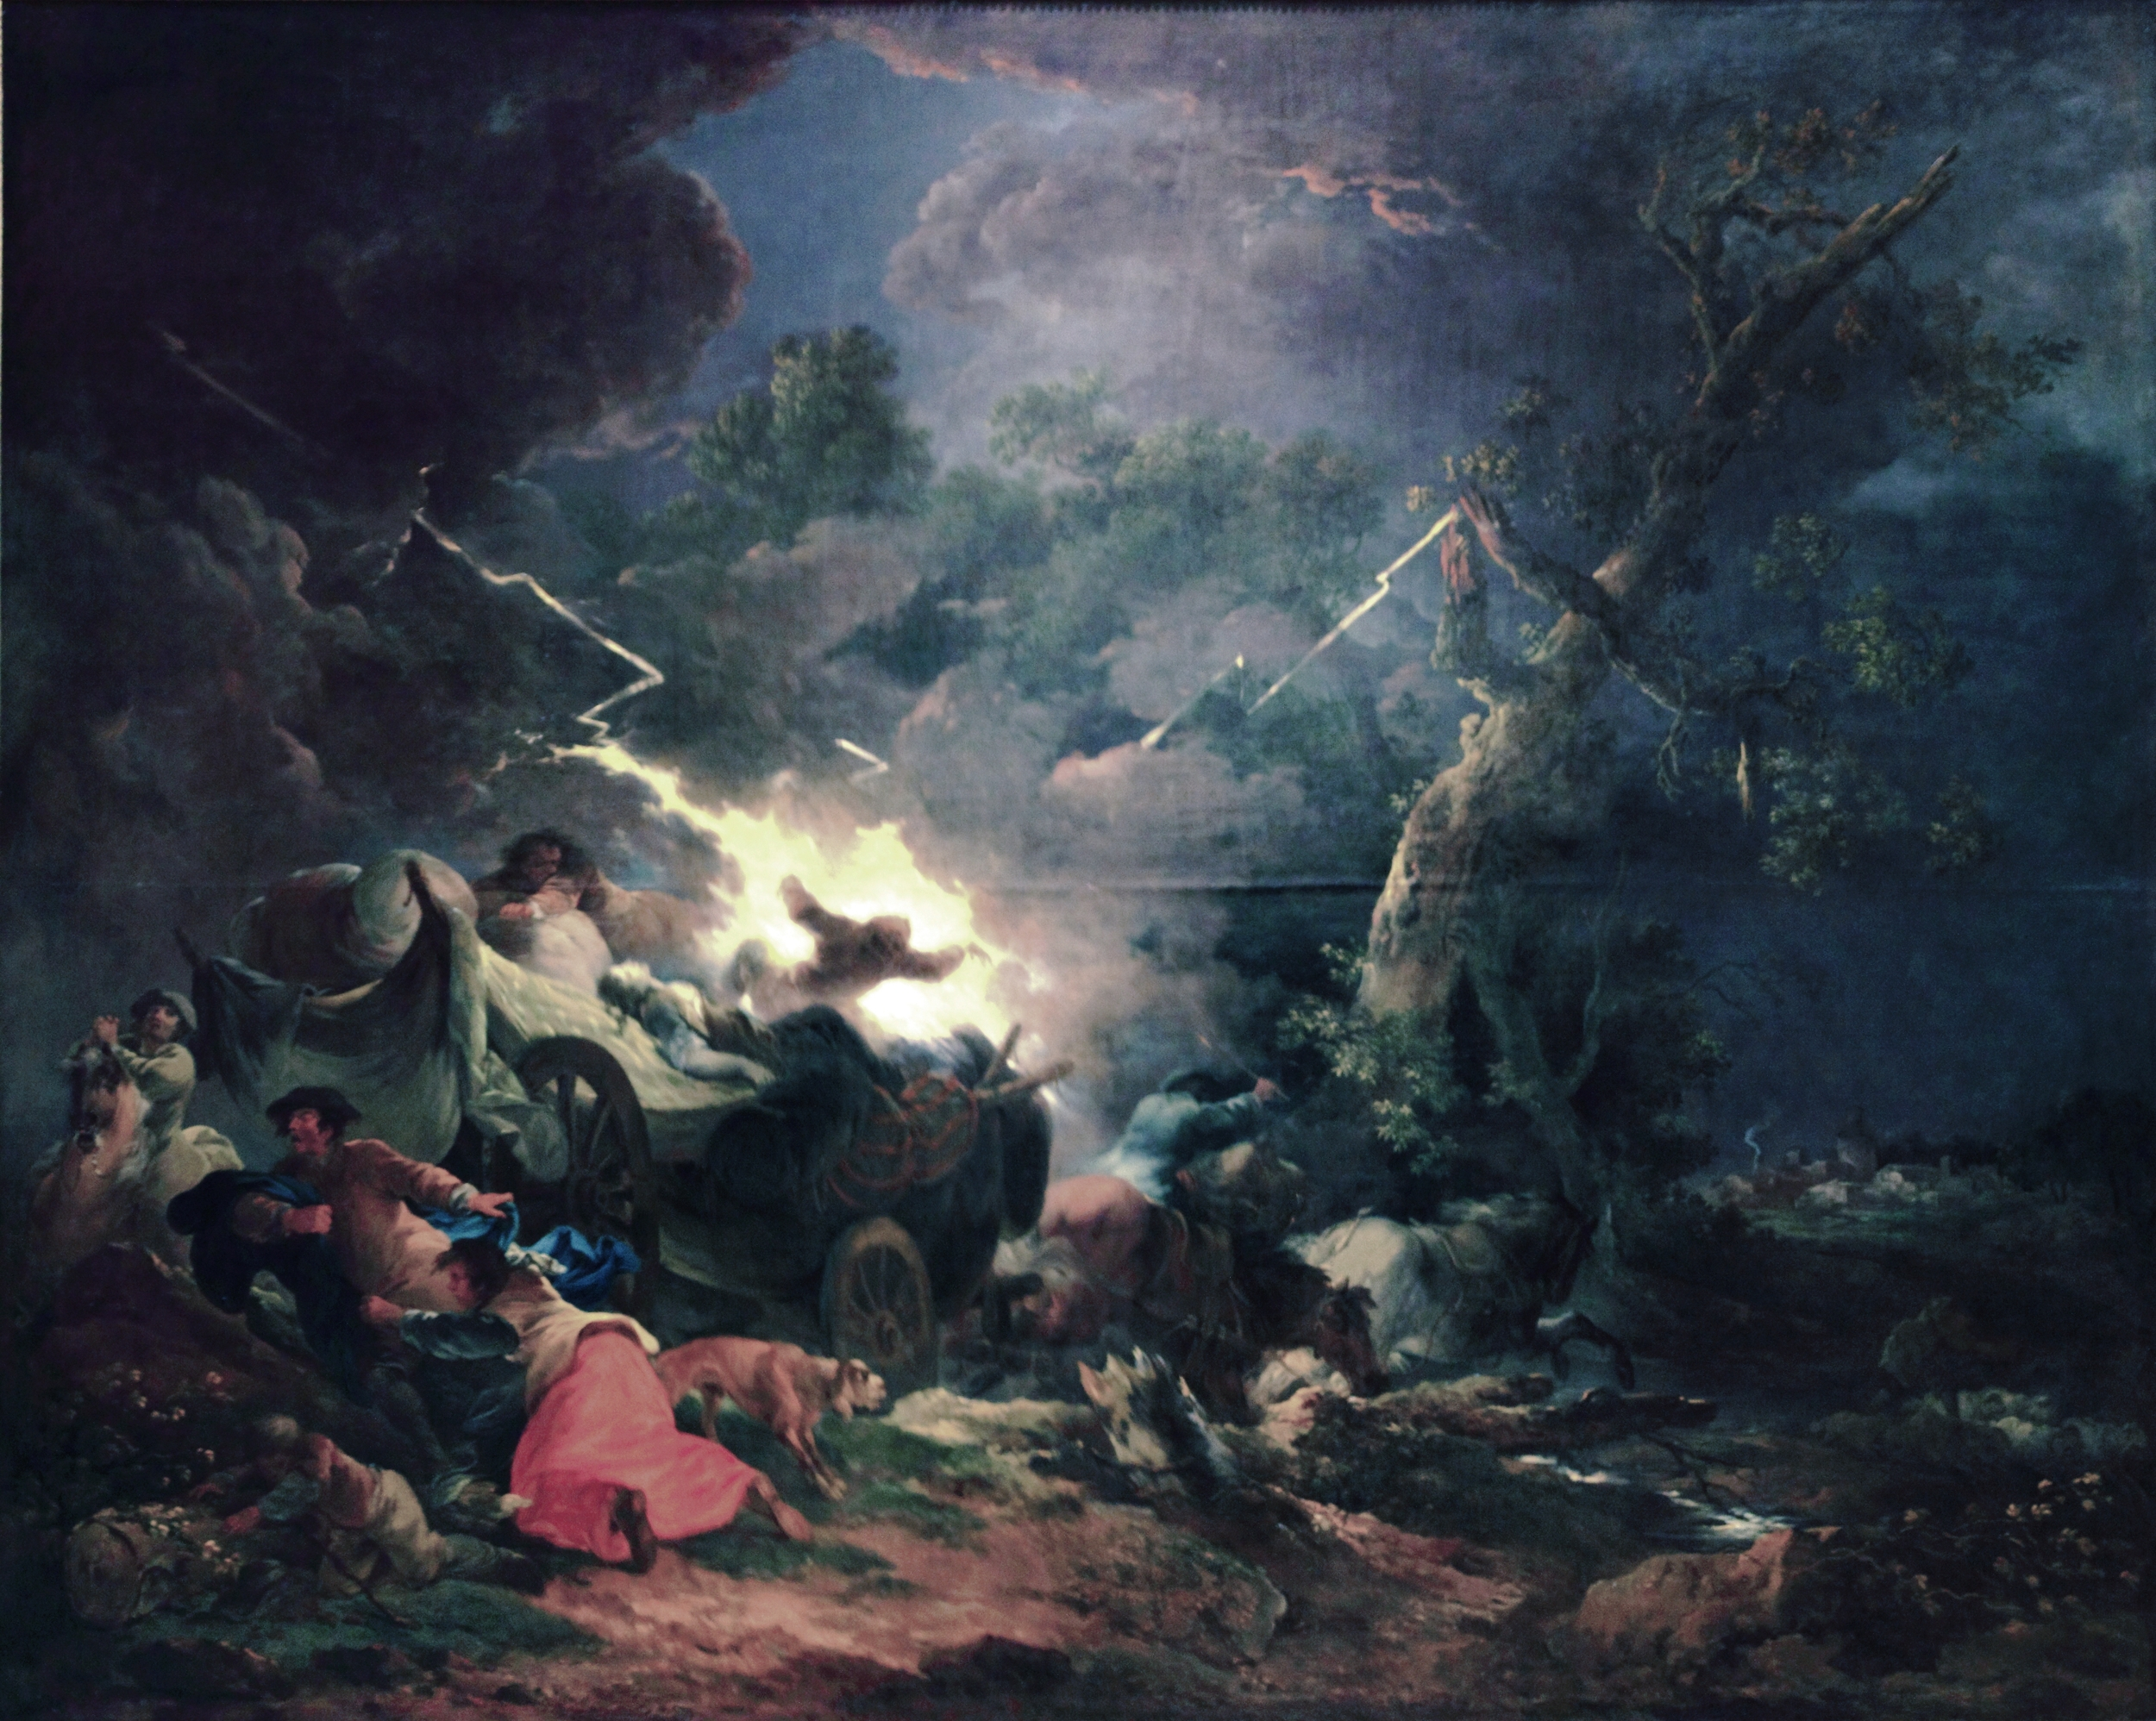 Paysans surpris par un orage  ( Peasants surprised by a storm ) (1770s) by Francesco Casanova. This may be the only extant painting of a person getting struck by lightning. He likely was not being punished for requesting more spaghetti.